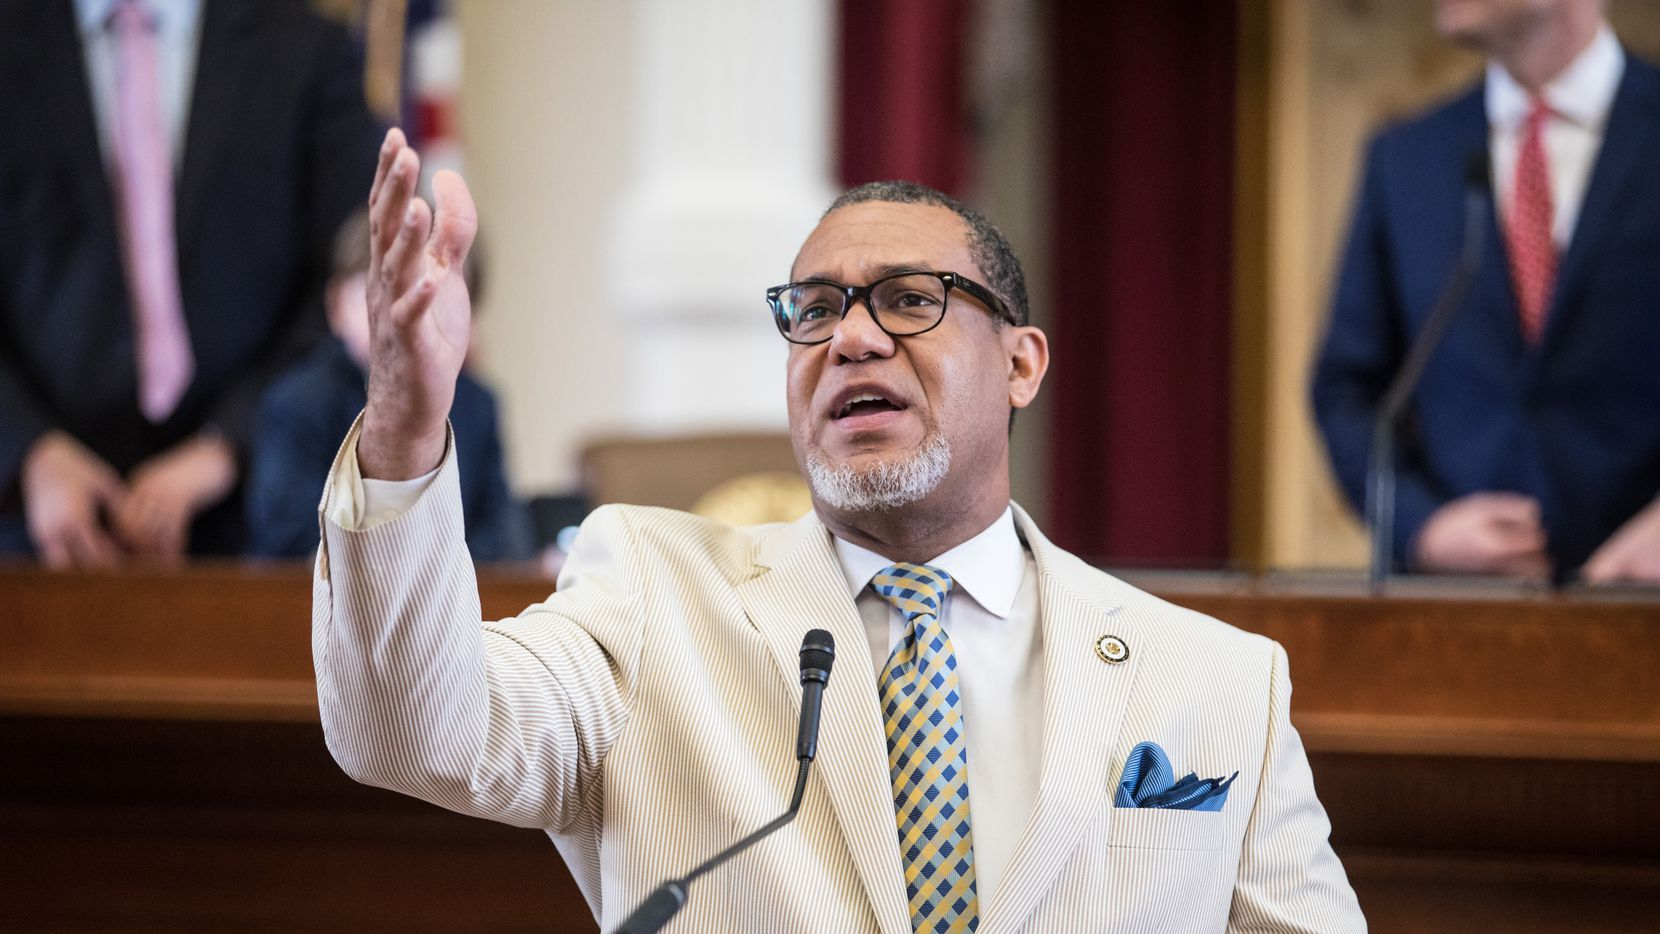 State Rep. Jarvis Johnson, D-Houston, shown here in 2019, is co-author of a bill that would crack down on the use of investigative hypnosis in criminal trials. The legislation passed the Texas House unanimously on Friday, April 30, 2021.